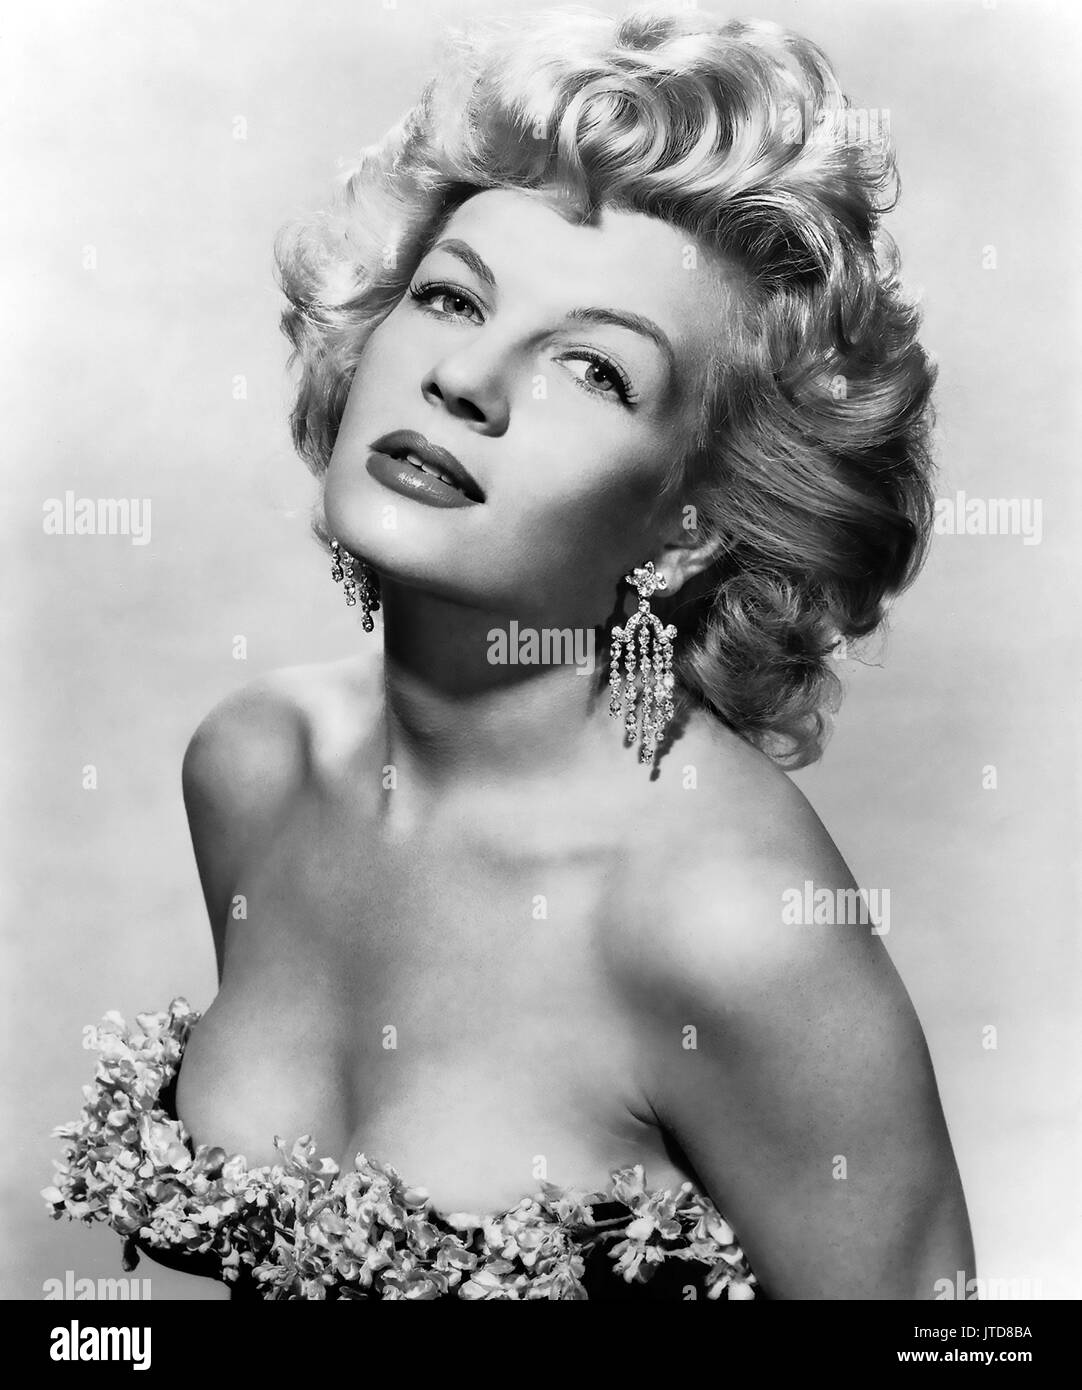 CORINNE CALVET (1925-2001) French film actress about 1956 - Stock Image